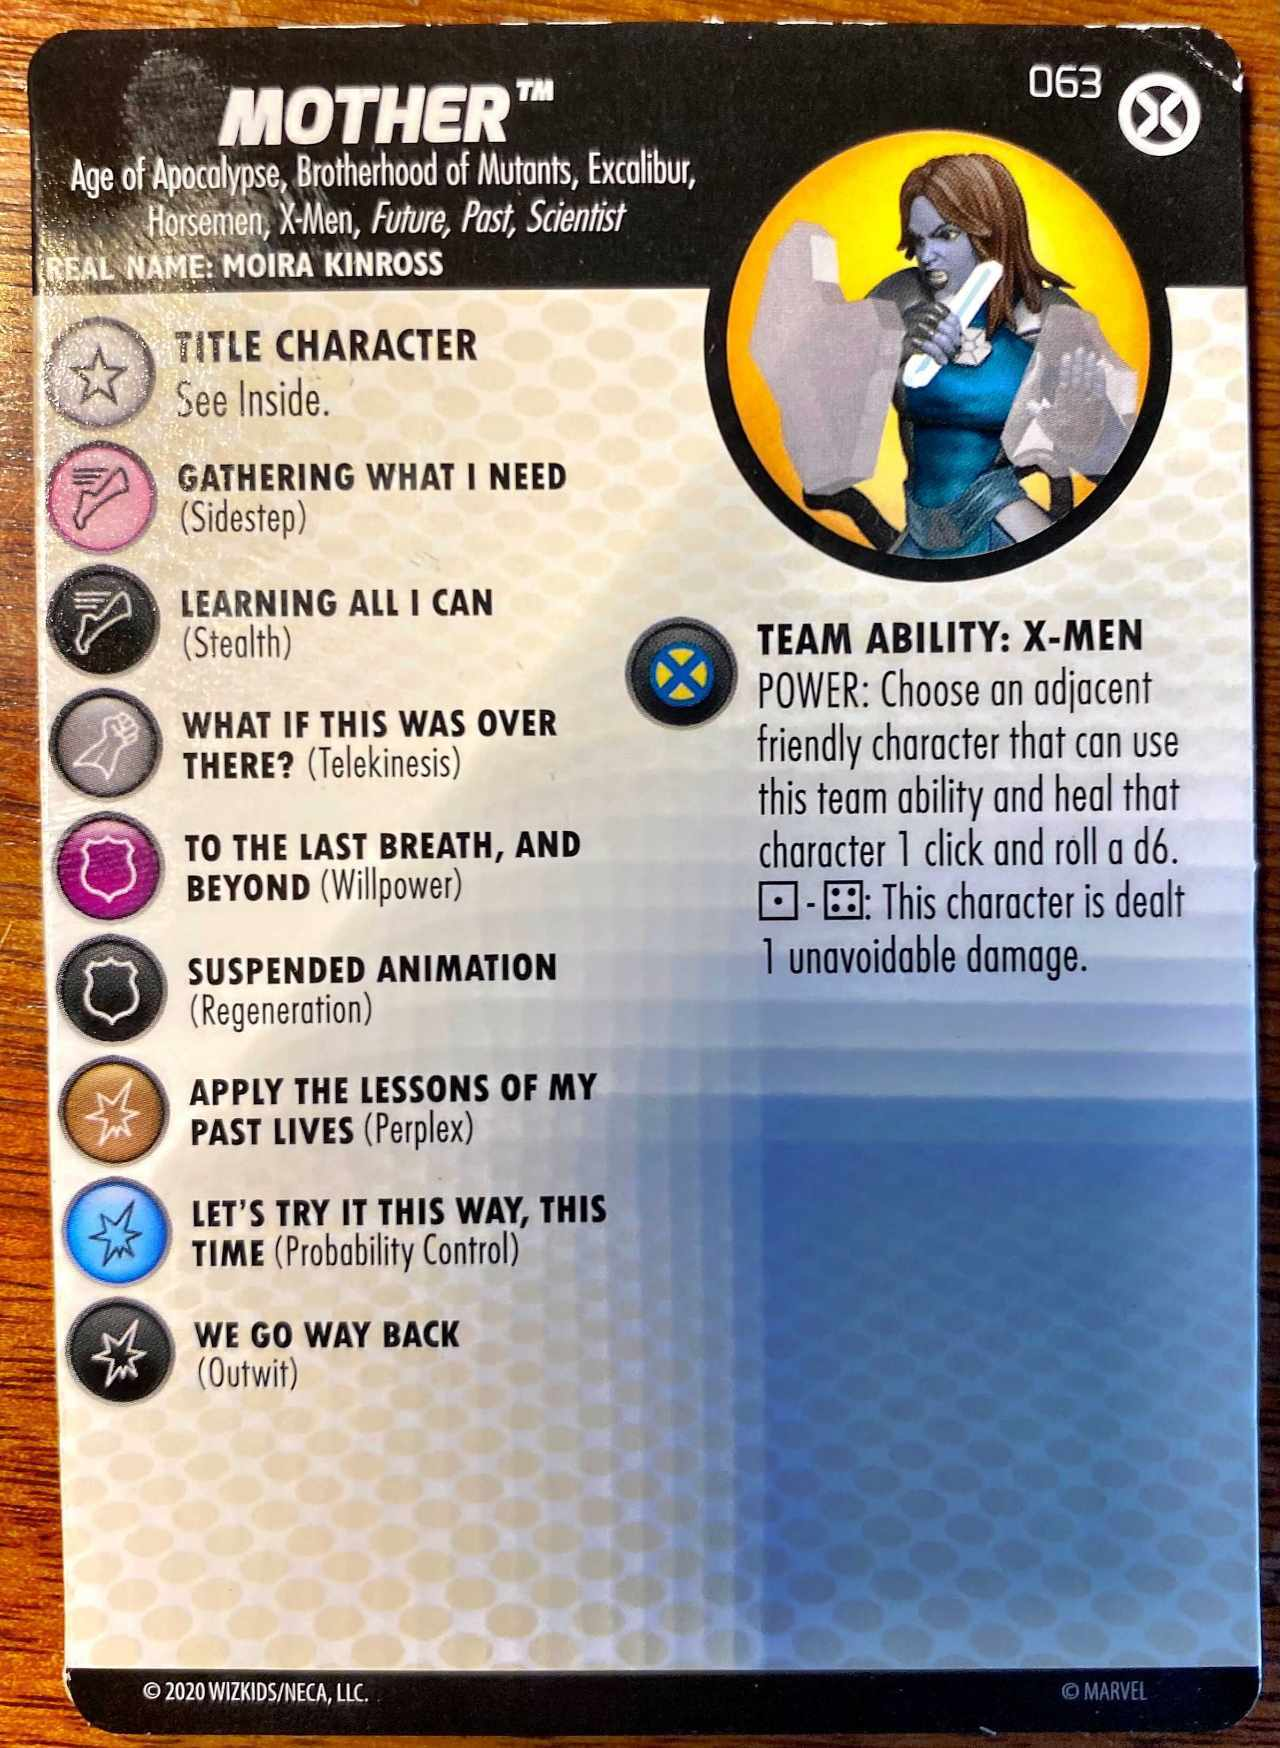 Marvel X-Men House of X HeroClix Mother Title Character (1)